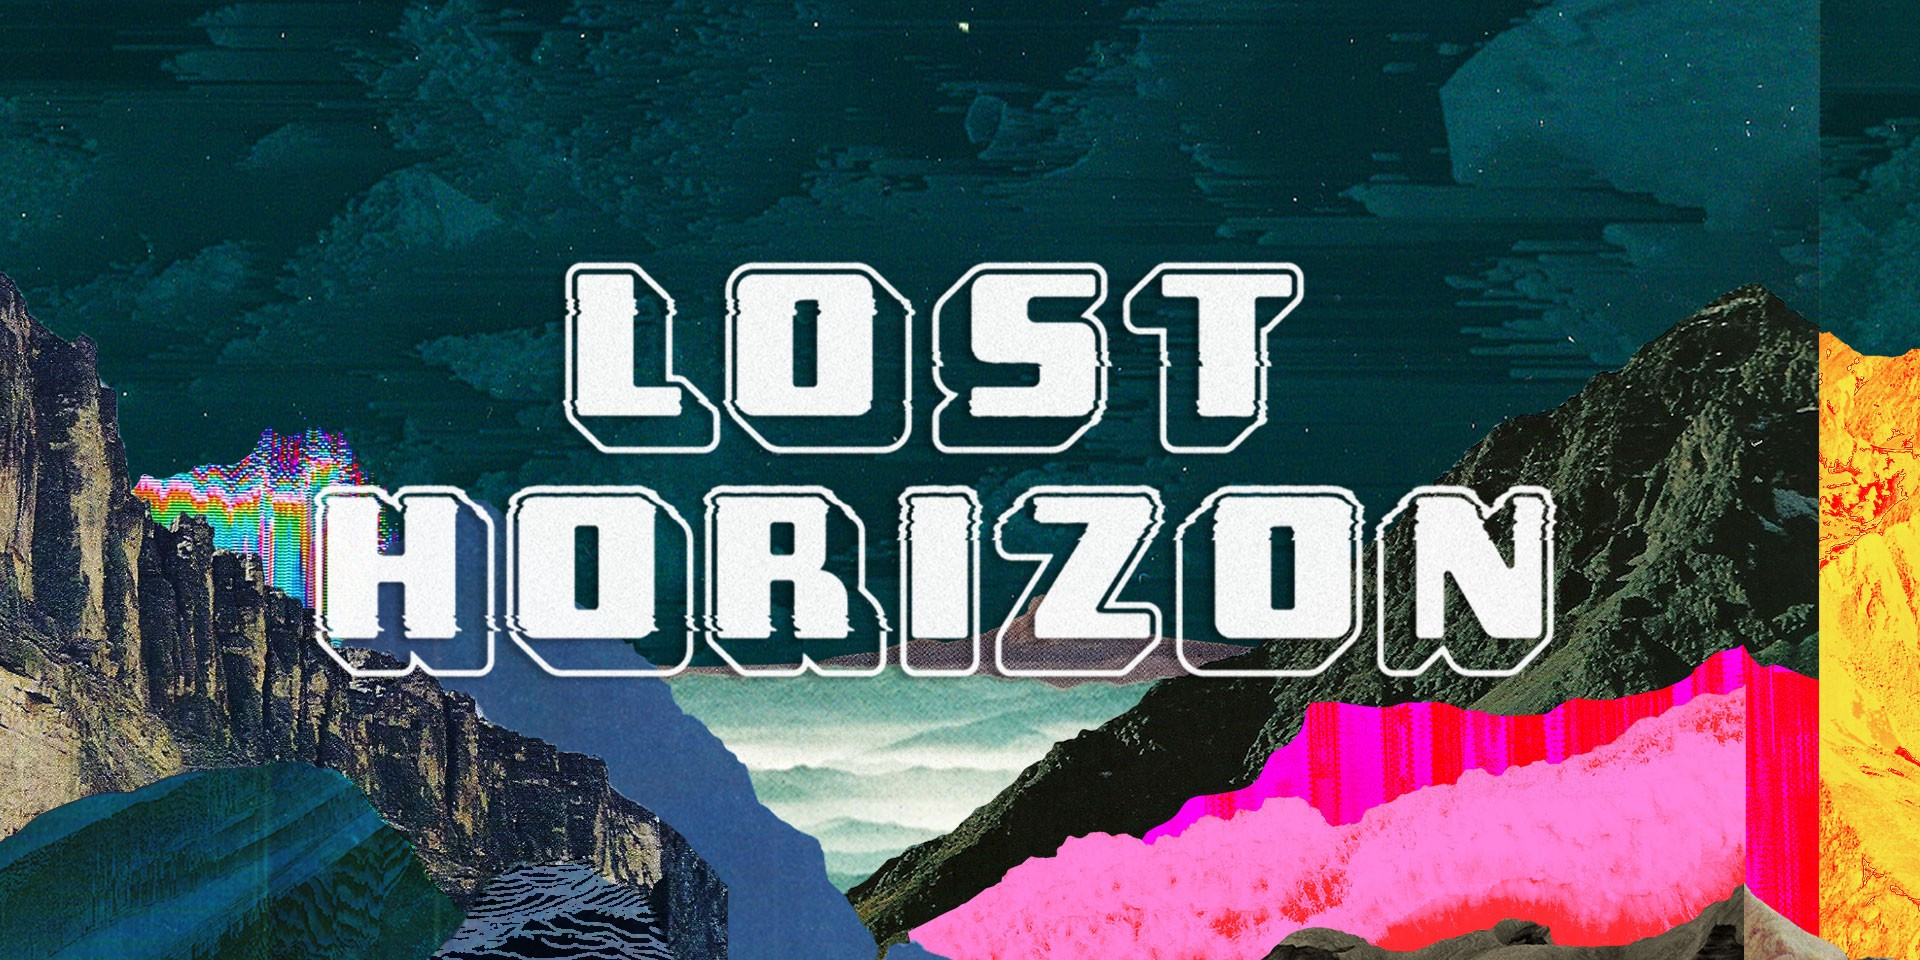 Glastonbury's Shangri-La announce 'Lost Horizon', the world's largest virtual reality music and arts festival